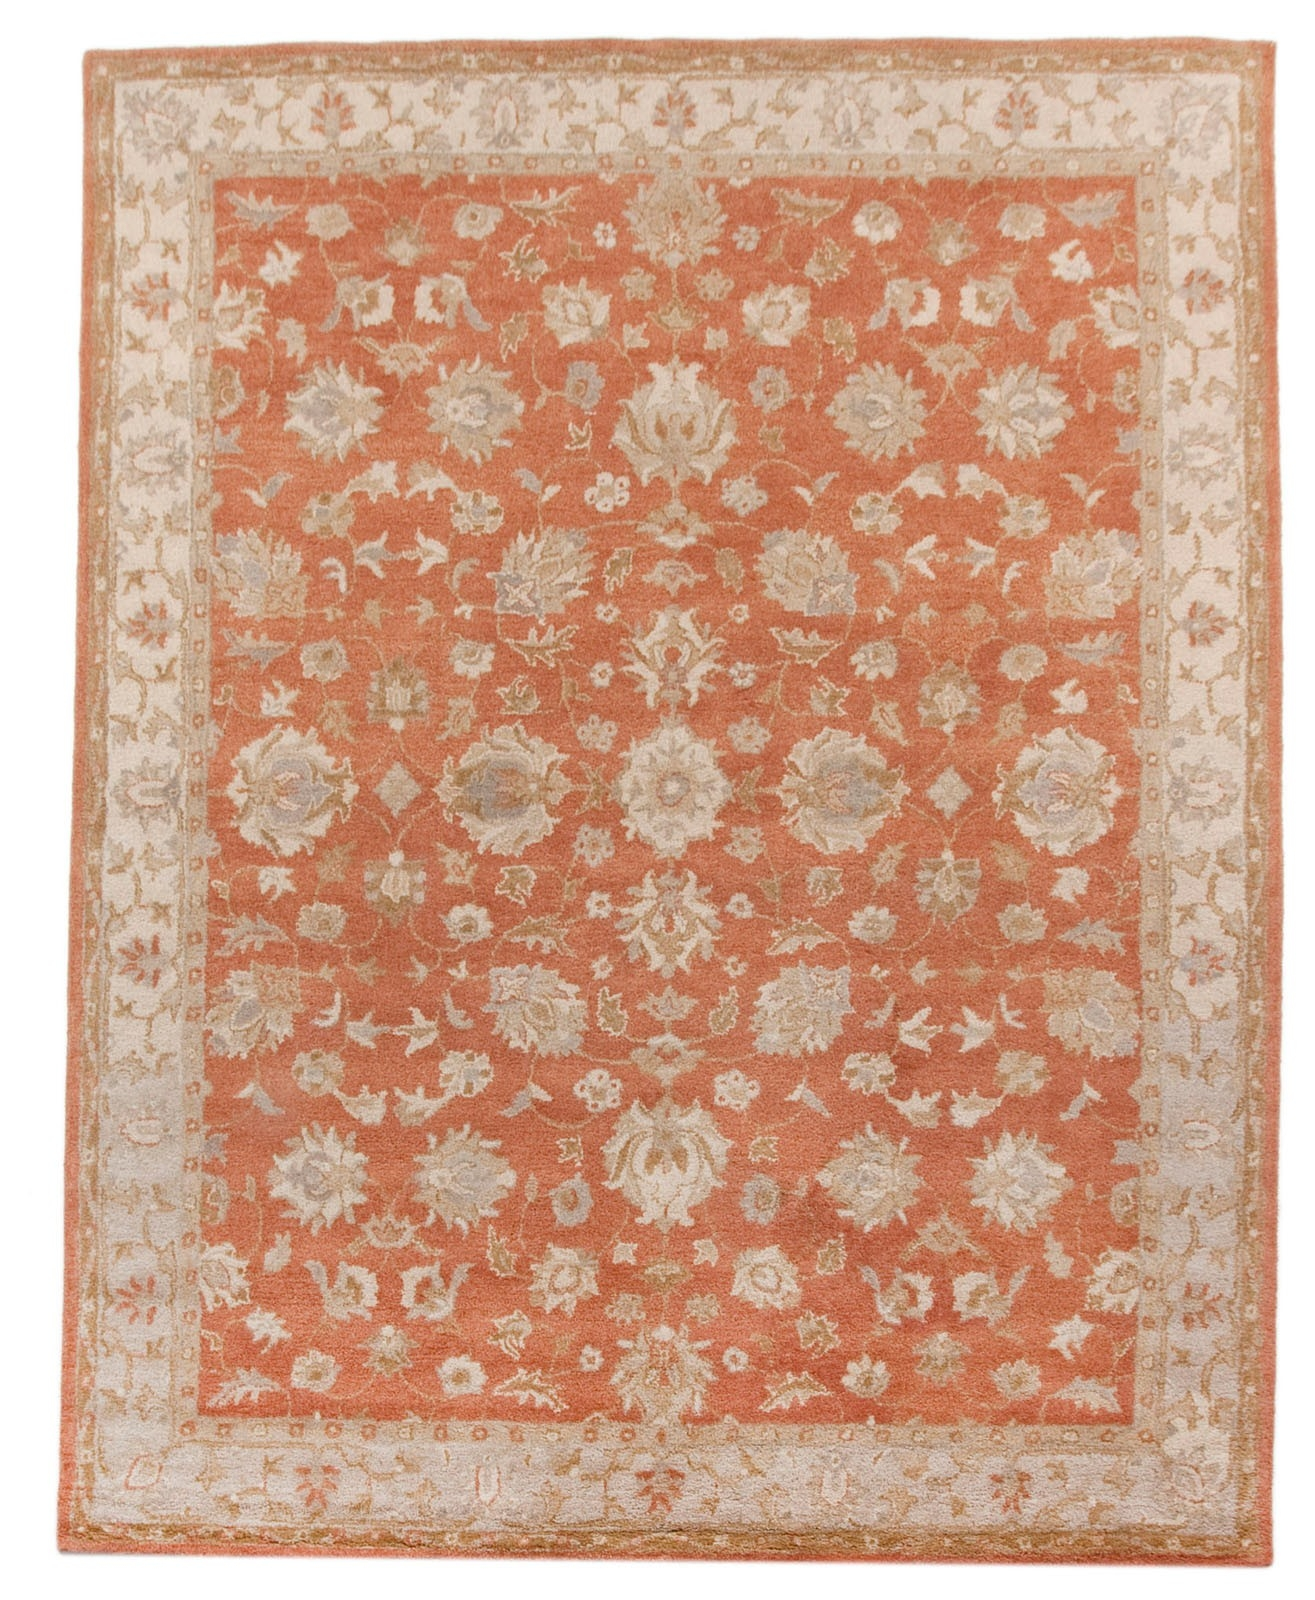 Pasargad Khotan Persian Wool Area Rug 8 X10: 15 Inspirations Of Wool Area Rugs 8×10